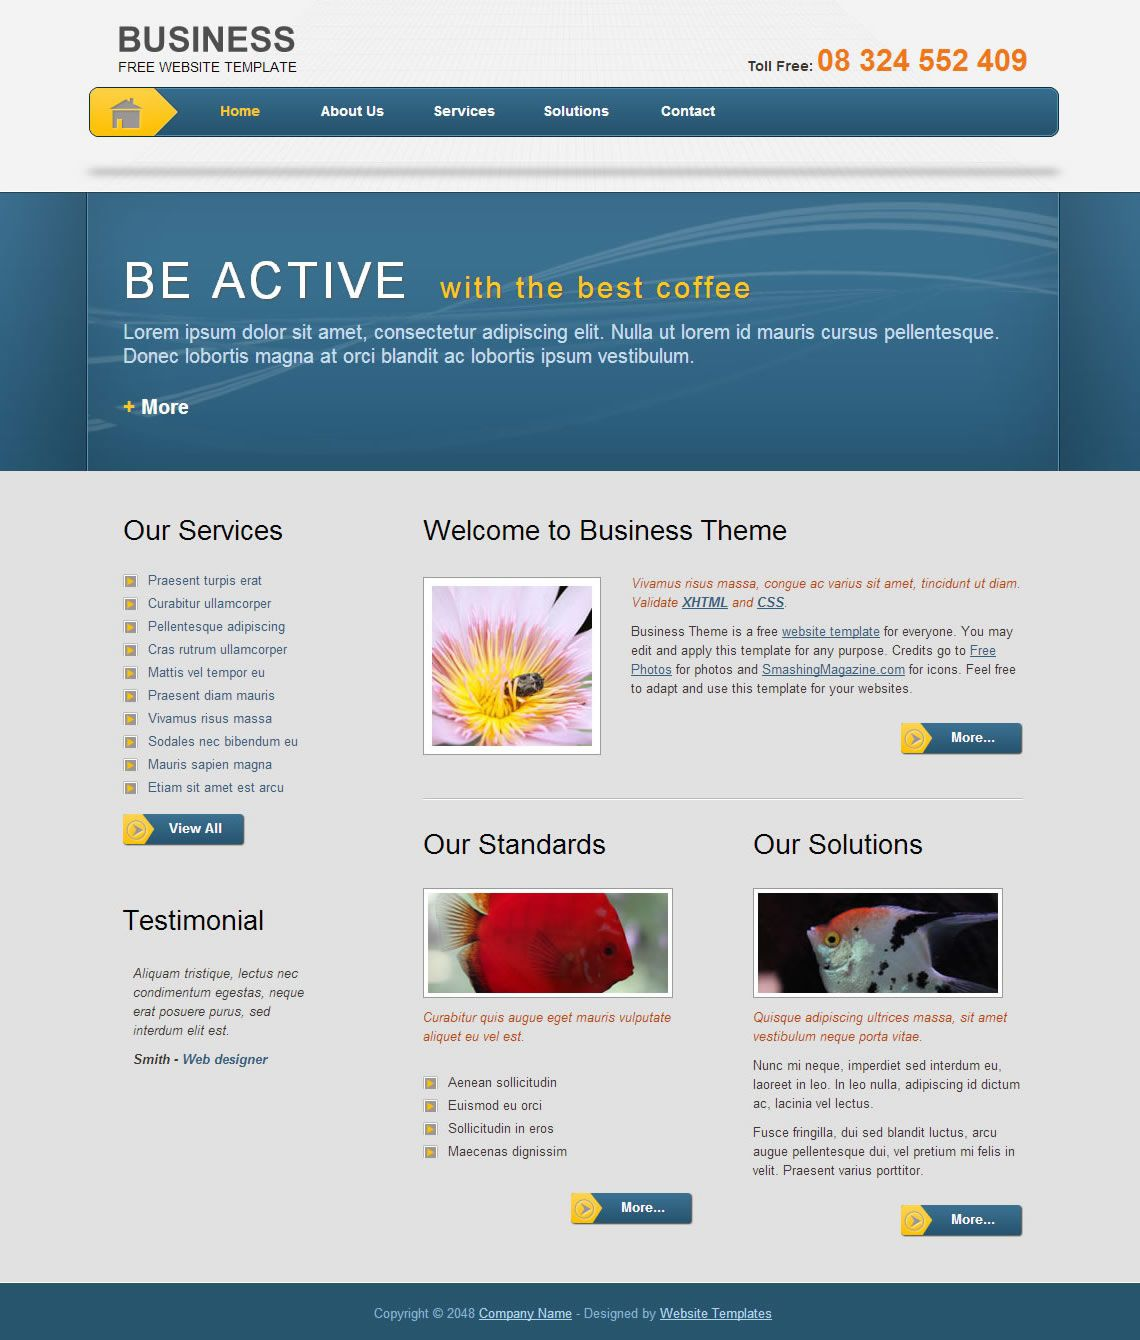 003 Rare Free Html Template Download Busines Picture  Business Email Responsive Web And Cs ForFull